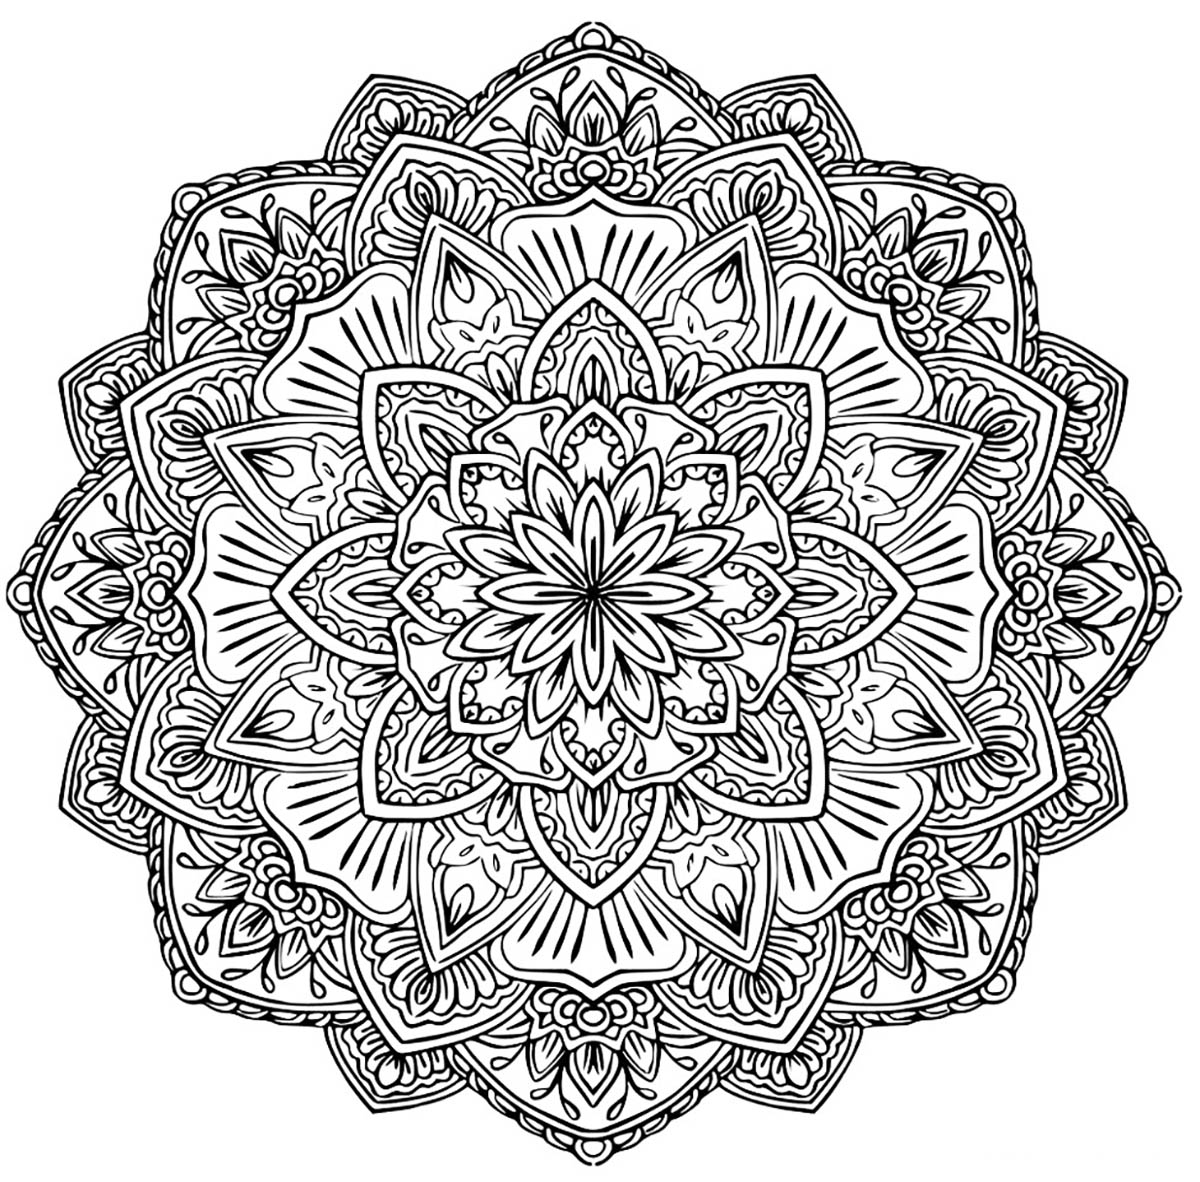 mandala coloring pages for adults free mandala to download in pdf 1 malas adult coloring pages adults mandala for free coloring pages